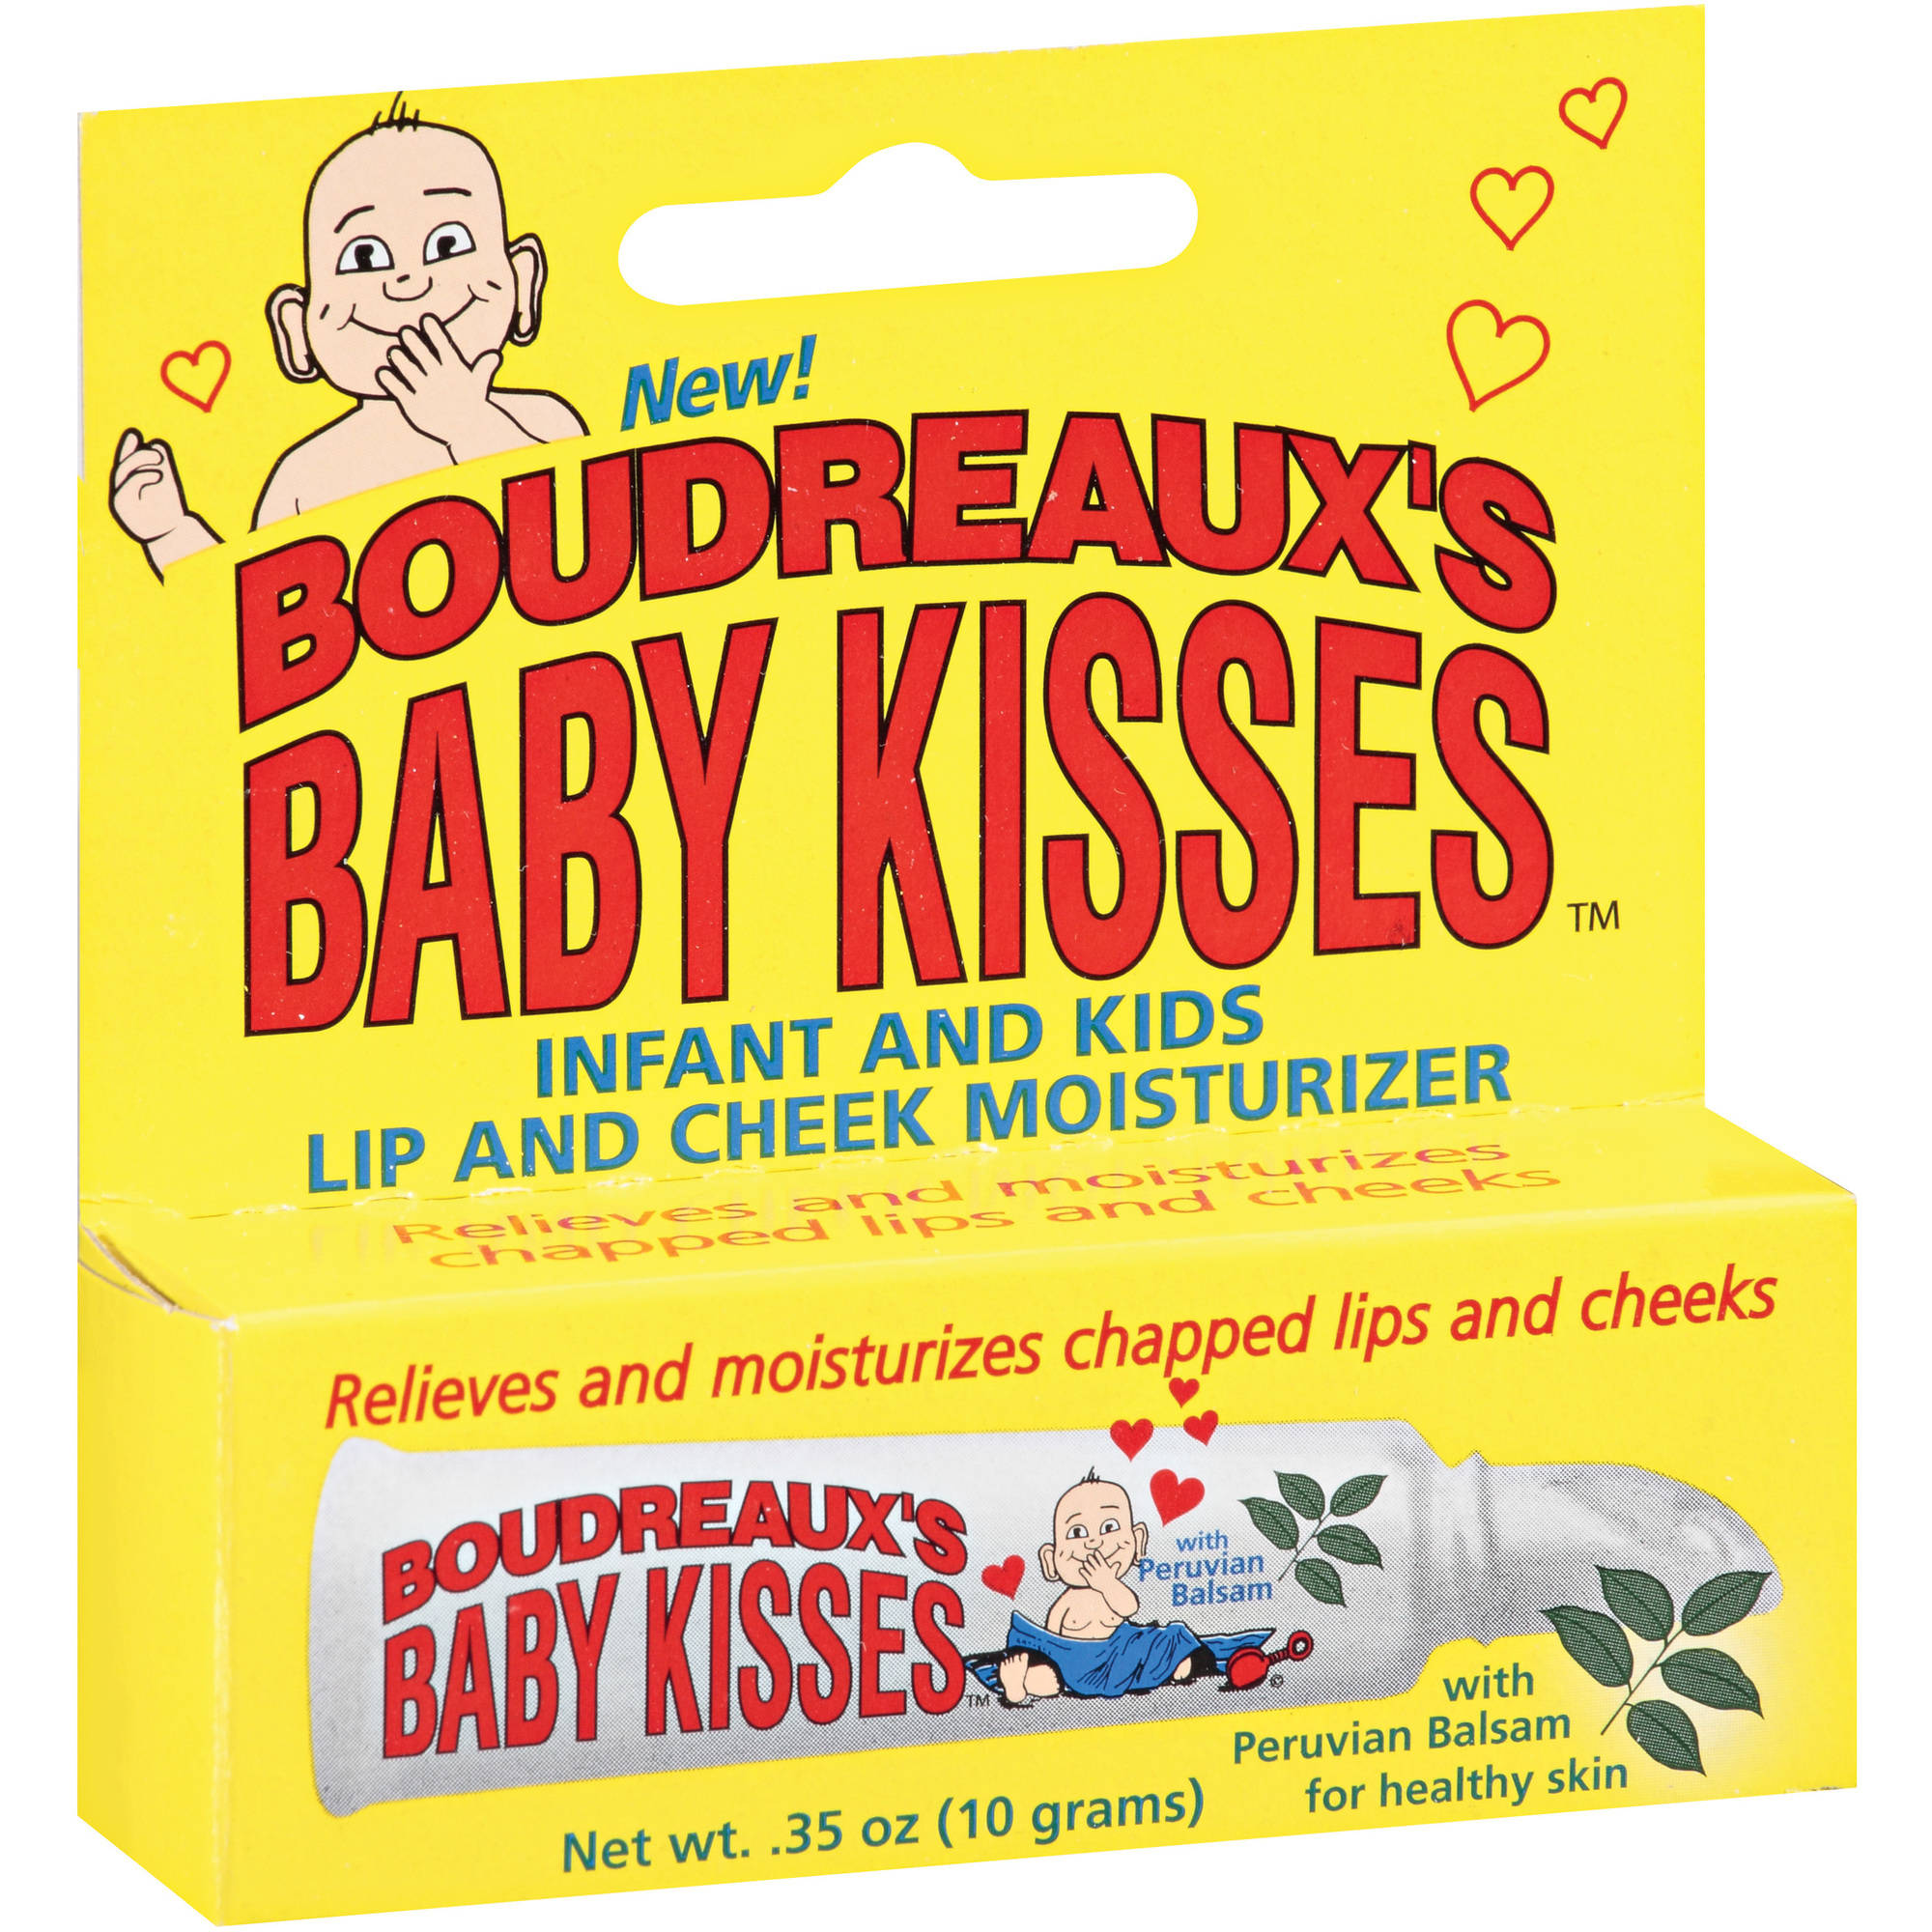 Boudreaux's Baby Kisses Lip And Cheek Moisturizer, 0.35 oz